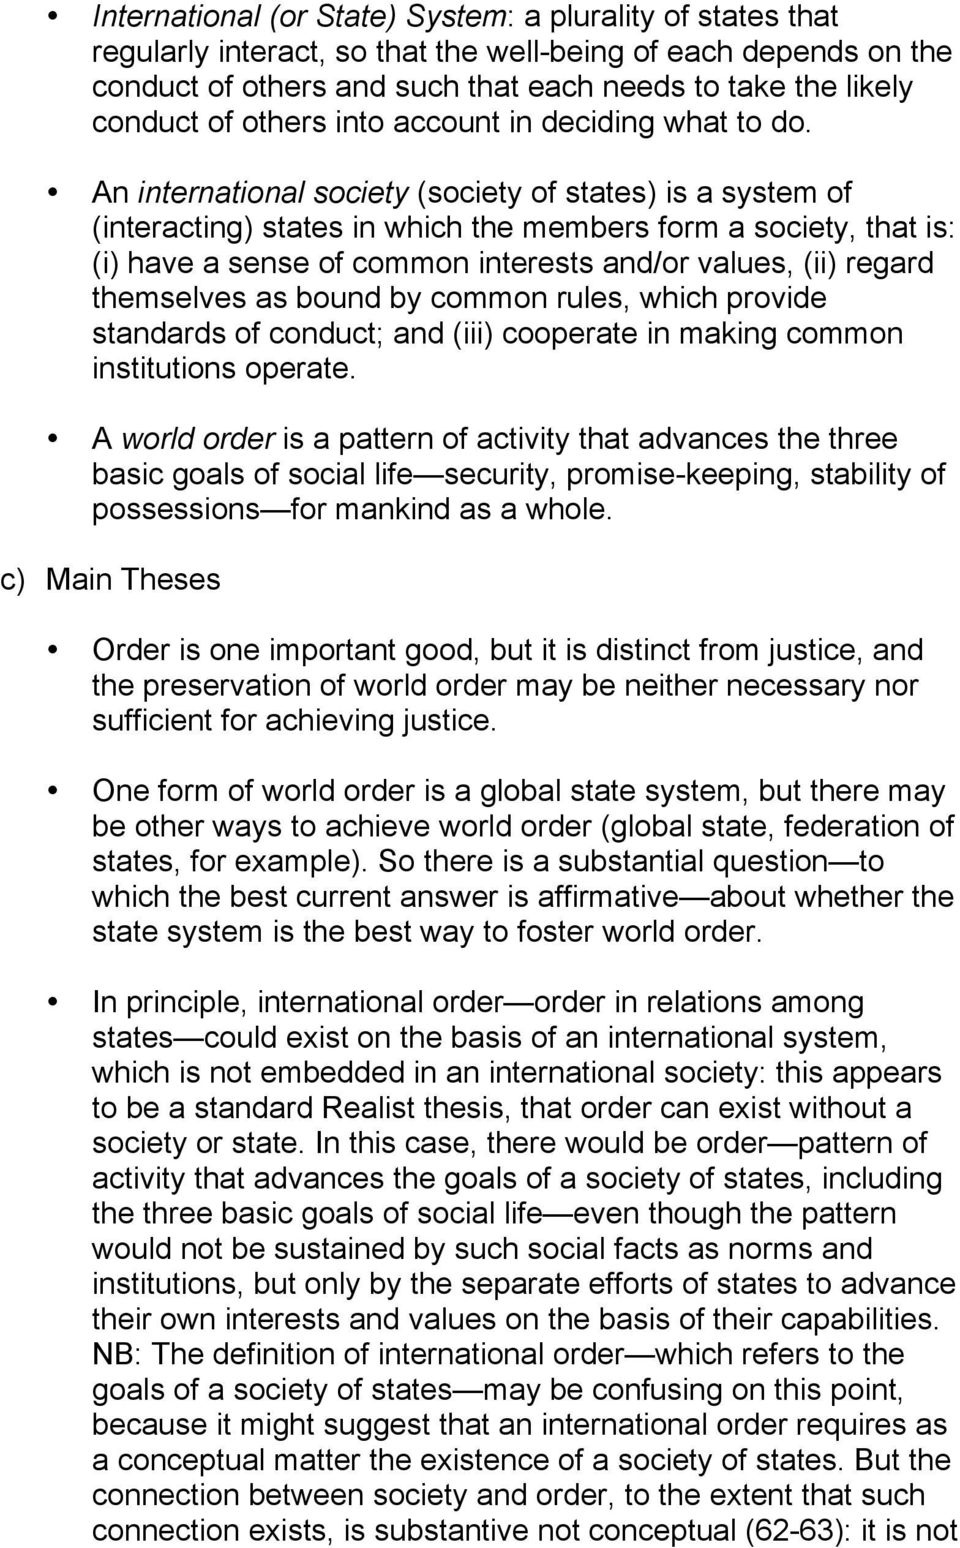 An international society (society of states) is a system of (interacting) states in which the members form a society, that is: (i) have a sense of common interests and/or values, (ii) regard